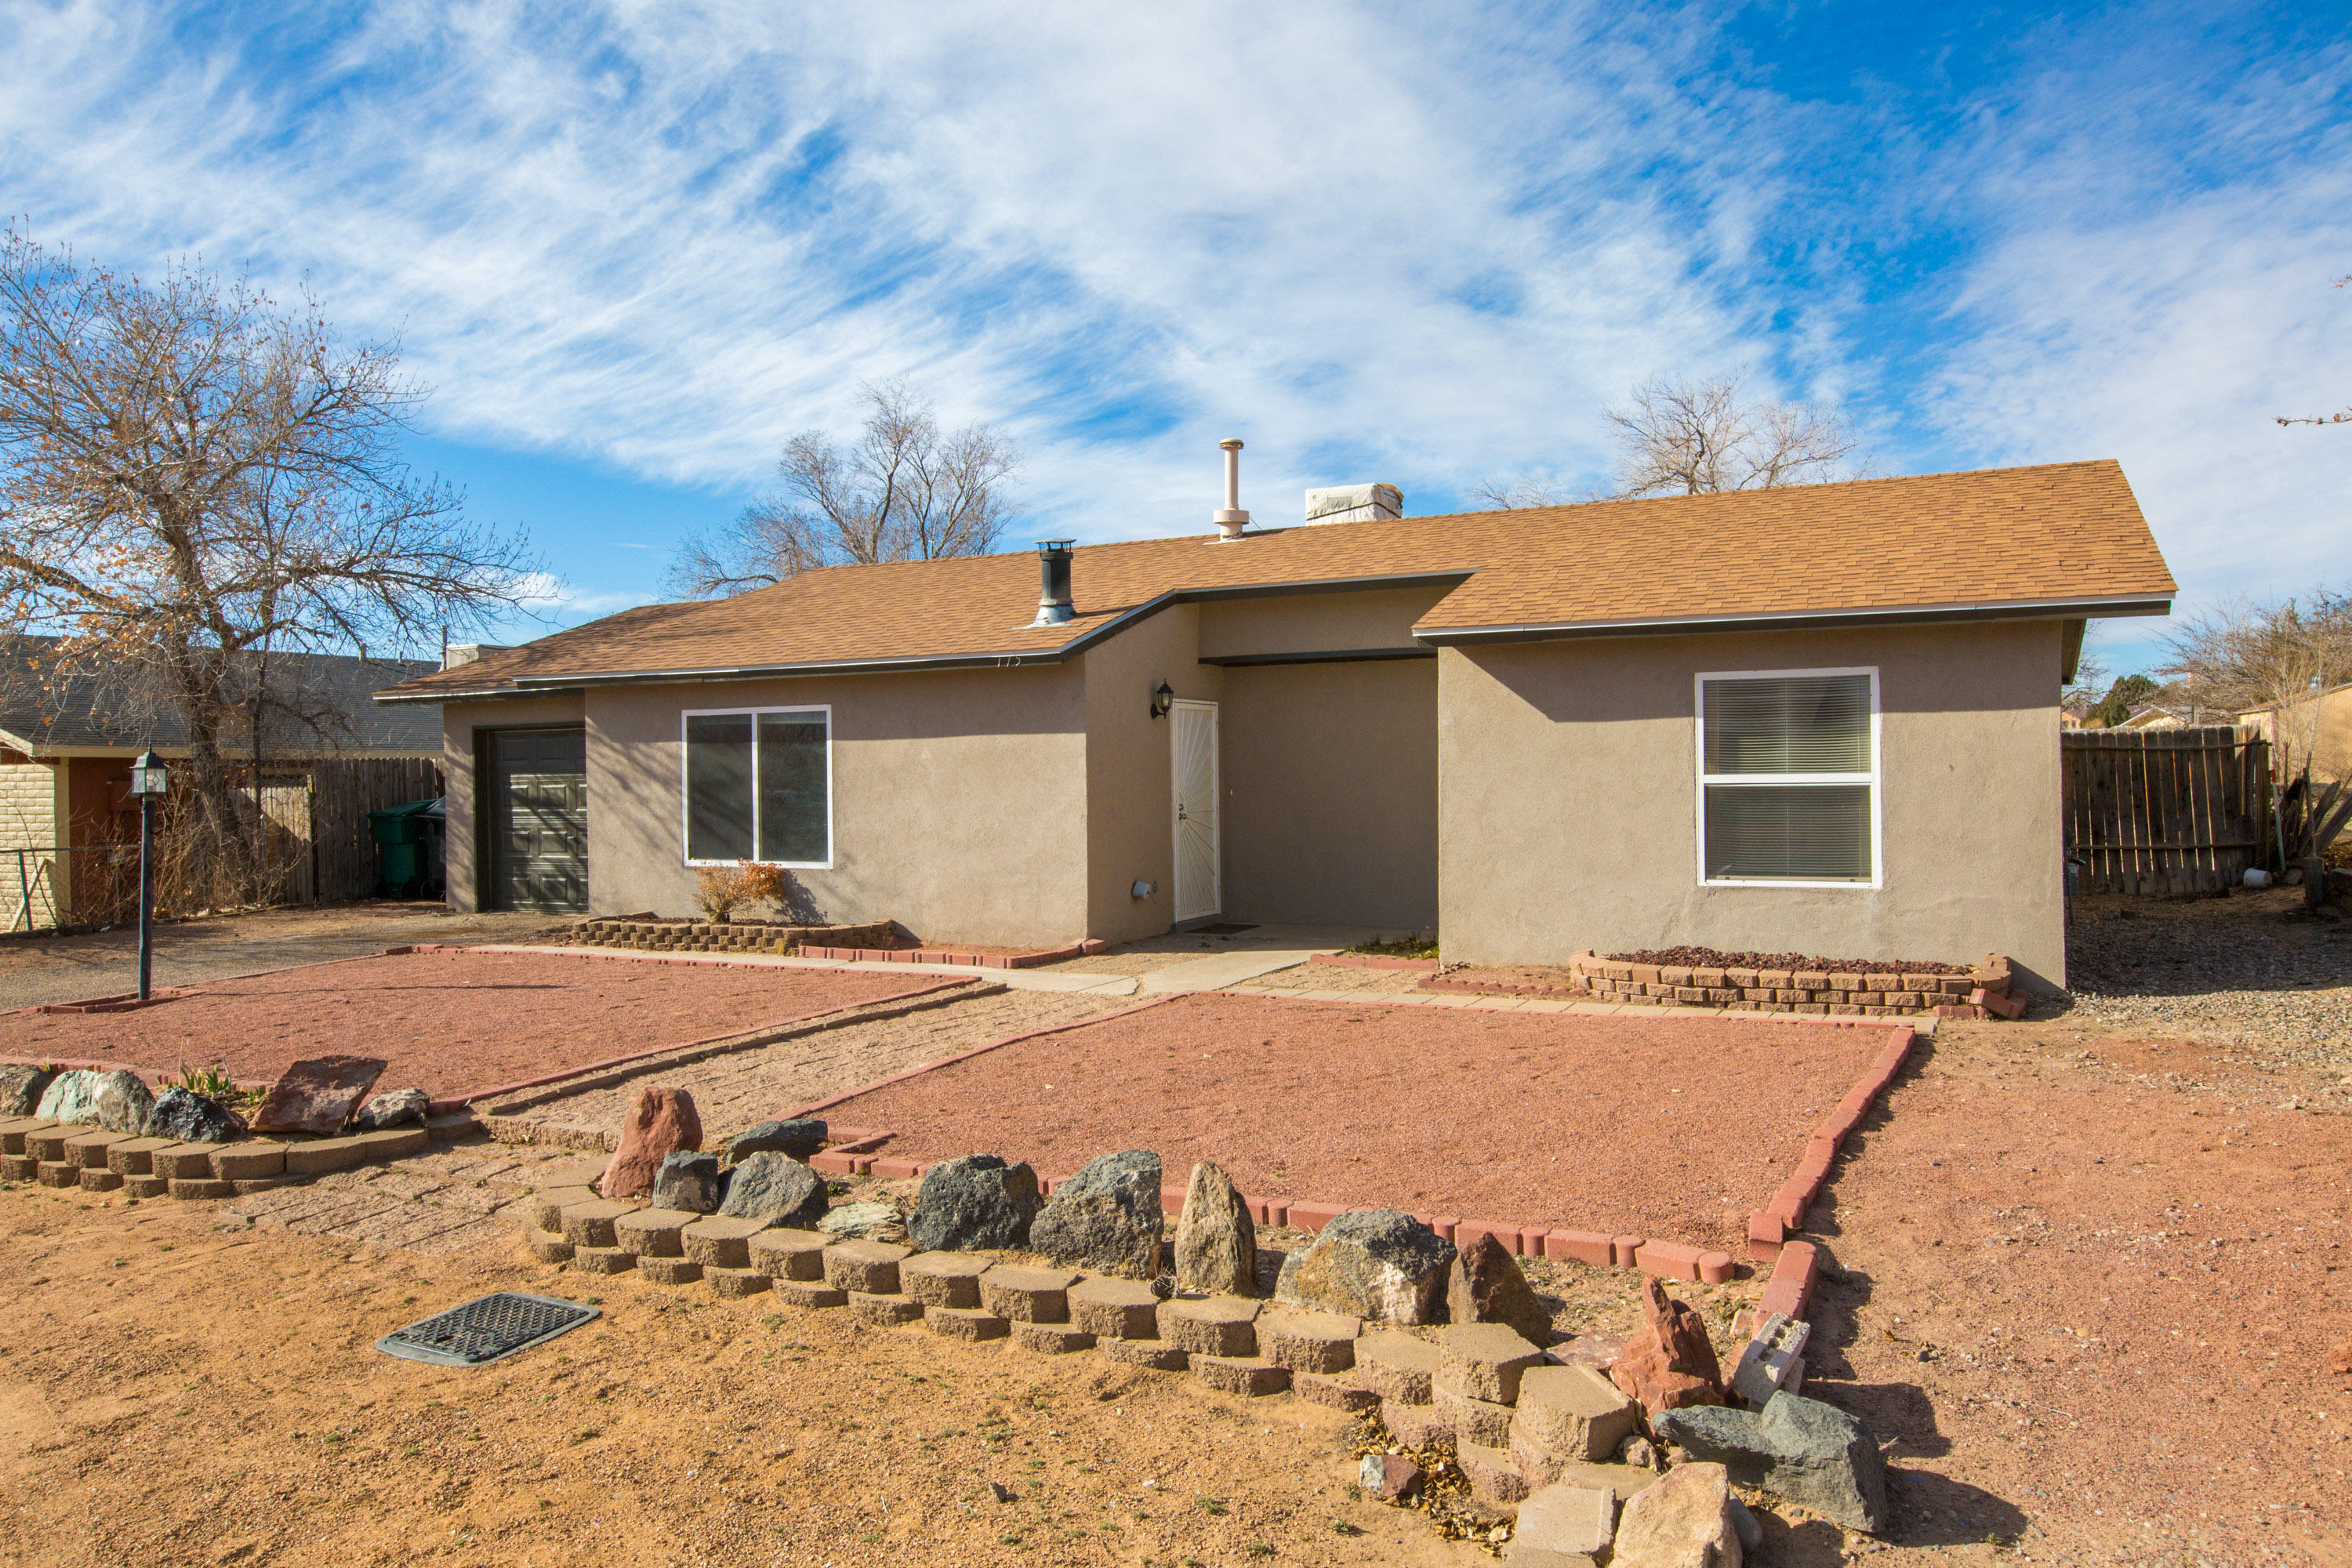 Come check out this listing in Rio Rancho! Great starter home with two bedrooms, and two full bathrooms! Fantastic backyard space, with additional covered structure for all types of uses. Fully renovated guest bathroom! Evaporative cooler installed in May 2020.  New Furnace and New Water heater installed a couple months ago in December 2020.